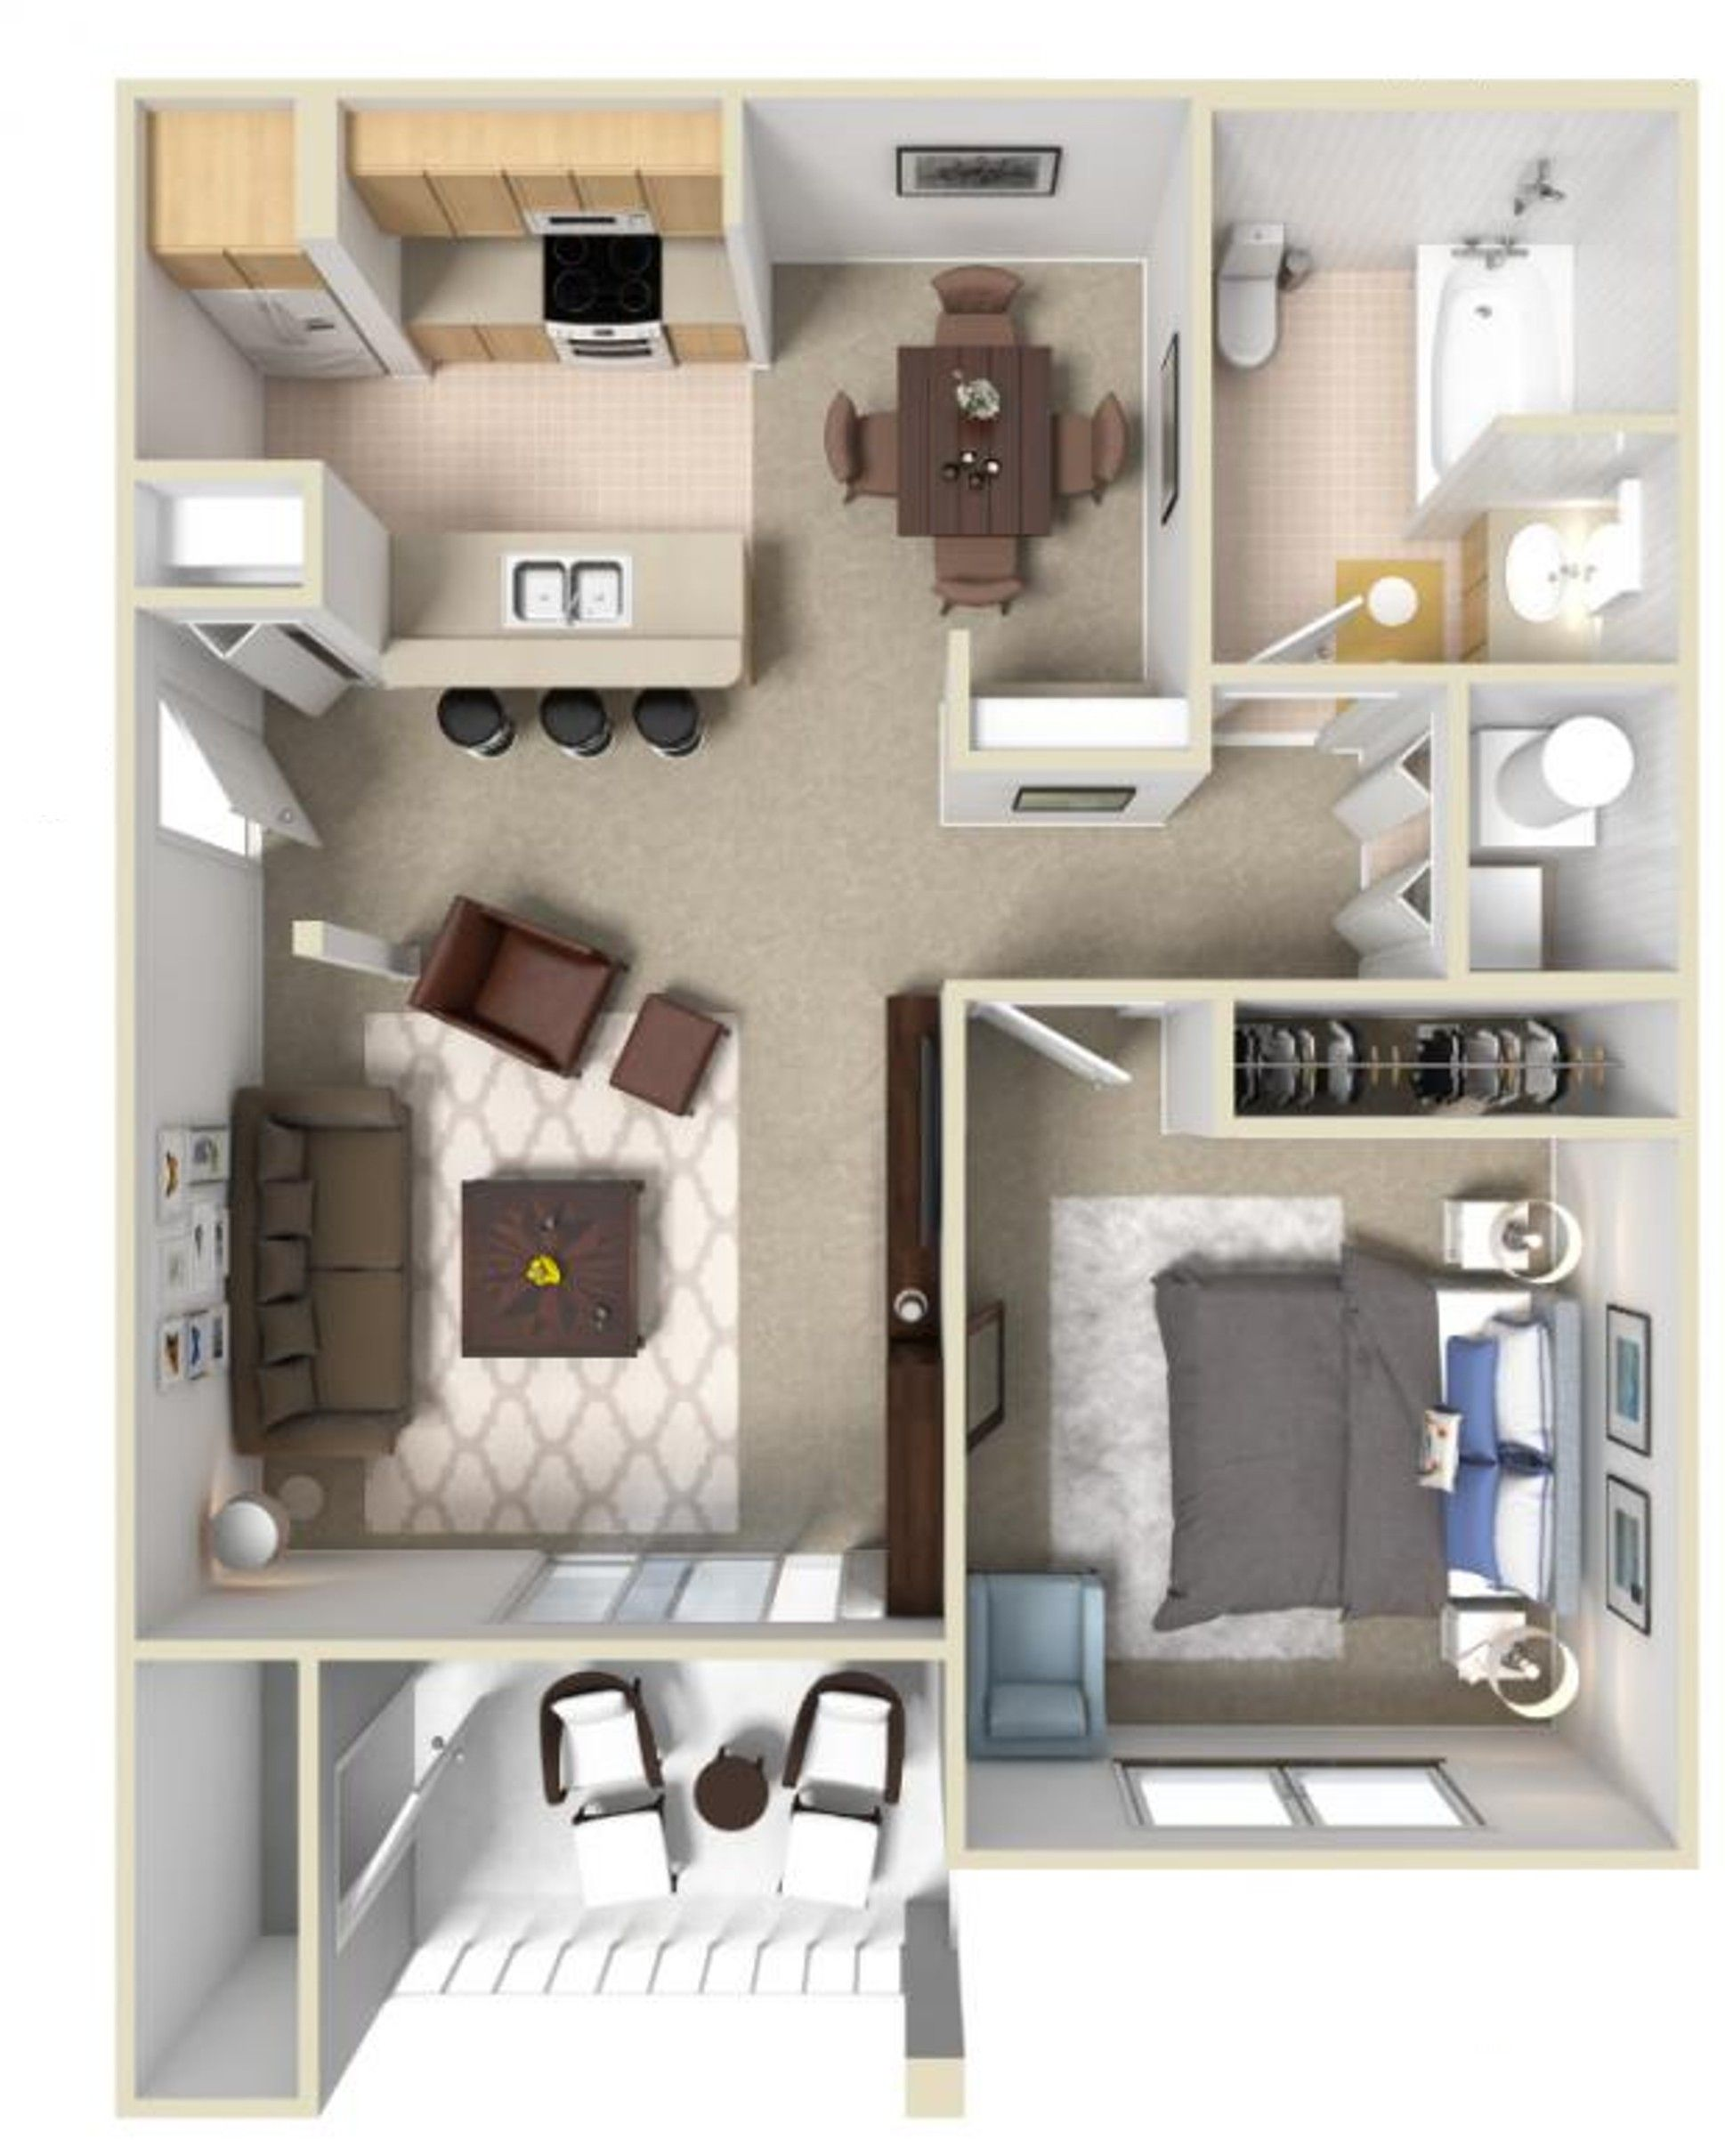 1 bedroom loft apartment  Floorplan  new apartment  Pinterest  Apartments